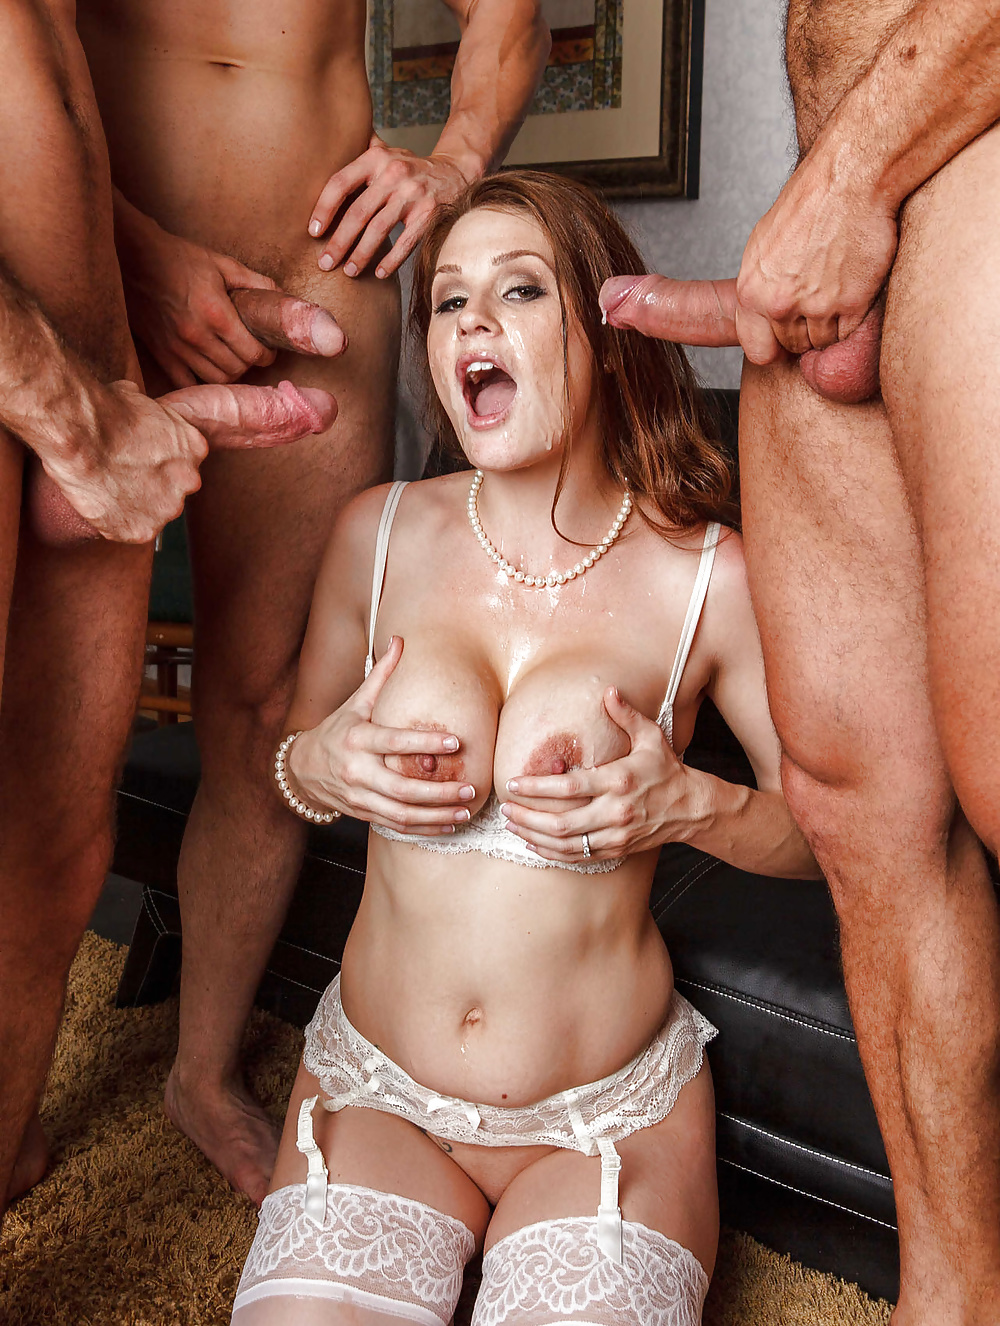 nude-wife-gangbang-stories-guy-putting-his